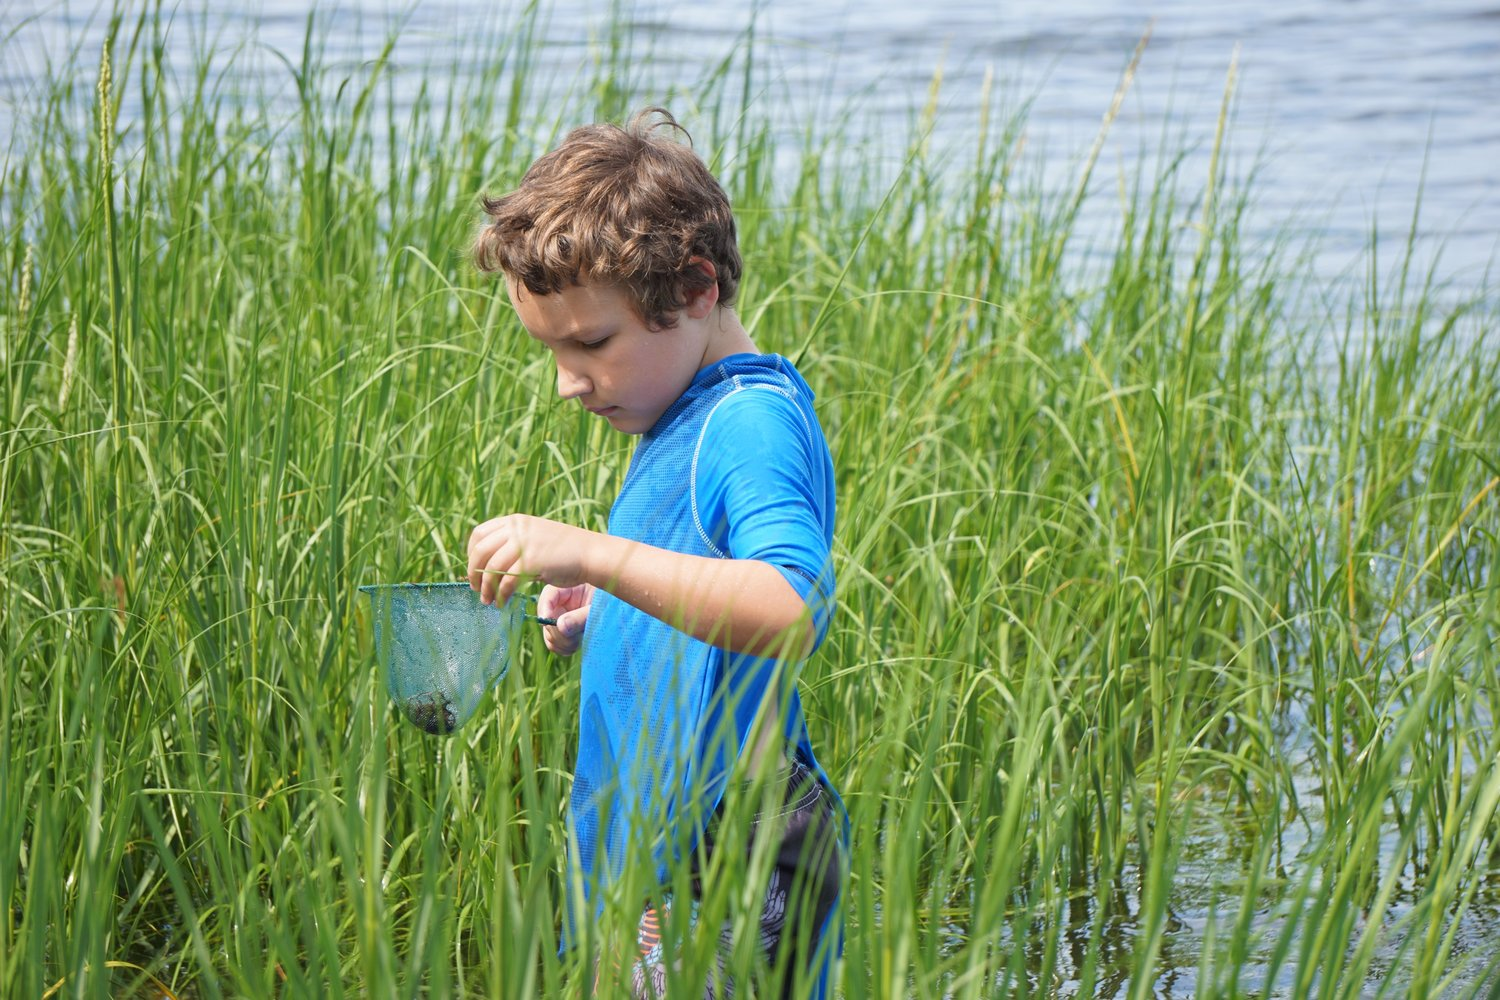 Shore Hike with Audubon, July 11, 2019 at the Audubon Nature Center and Aquarium in Bristol.